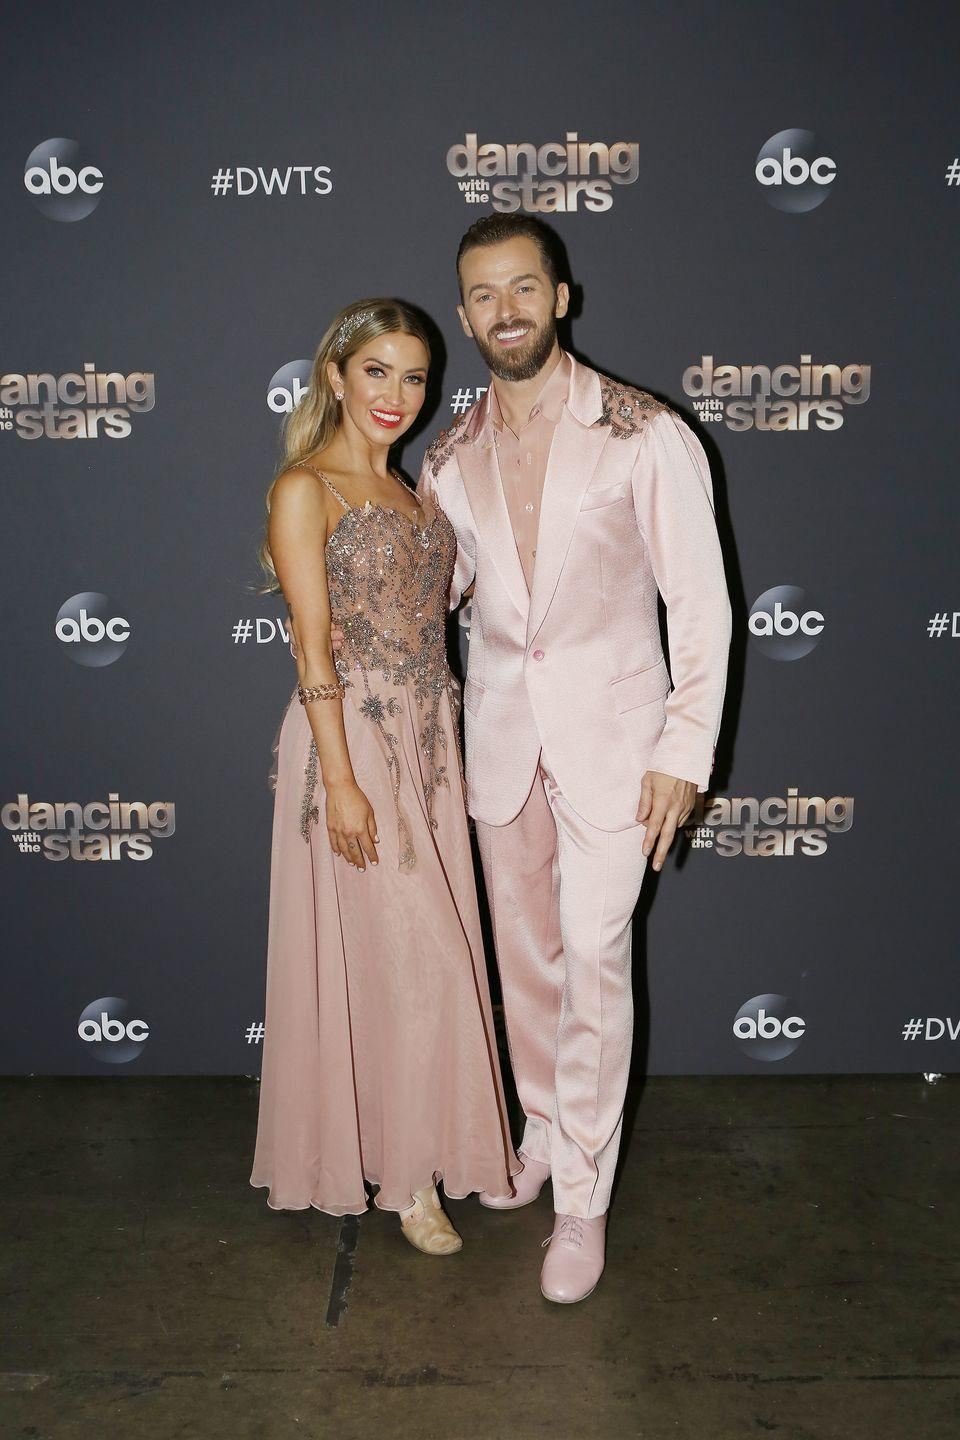 "<p><em>Bachelorette</em> alum Kaitlyn Bristowe has also already suffered an injury just two episodes in to the 29th season. At the start of the show, host Tyra Banks announced that Kaitlyn had yet to make a call if she would dance or not after she injured her ankle in practice.</p><p>""The rest of our cast is ready to light up the ballroom with the exception of one. Just before we went live, Kaitlyn Bristowe was dealing with an ankle injury. So we got to ask, will she pull though?"" Tyra asked as video played of Kaitlyn being checked out by a doctor via <a href=""https://www.etonline.com/dwts-kaitlyn-bristowe-impresses-after-suffering-ankle-injury-just-before-live-show-153530"" rel=""nofollow noopener"" target=""_blank"" data-ylk=""slk:ET"" class=""link rapid-noclick-resp""><em>ET</em></a>. ""We'll find out later. We'll find out live."" </p><p>An hour into the show, Katilyn's dancing partner Artem Chigvintsev revealed that she <em>would </em>be dancing. ""Good news, she's feeling a lot better and she will be dancing tonight,"" he said. </p><p>And Kaitlyn herself spoke before she was set to do the Foxtrot to ""I Hope You Dance"" by Lee Ann Womack. ""I tell myself all the time, 'I'm resilient, this is a dream, I'll dance through anything.' As long as I was cleared to do it, I was happy to do it,"" she told Tyra.</p><p>Katilyn and Artem crushed it, earning a score of 22/30.</p>"